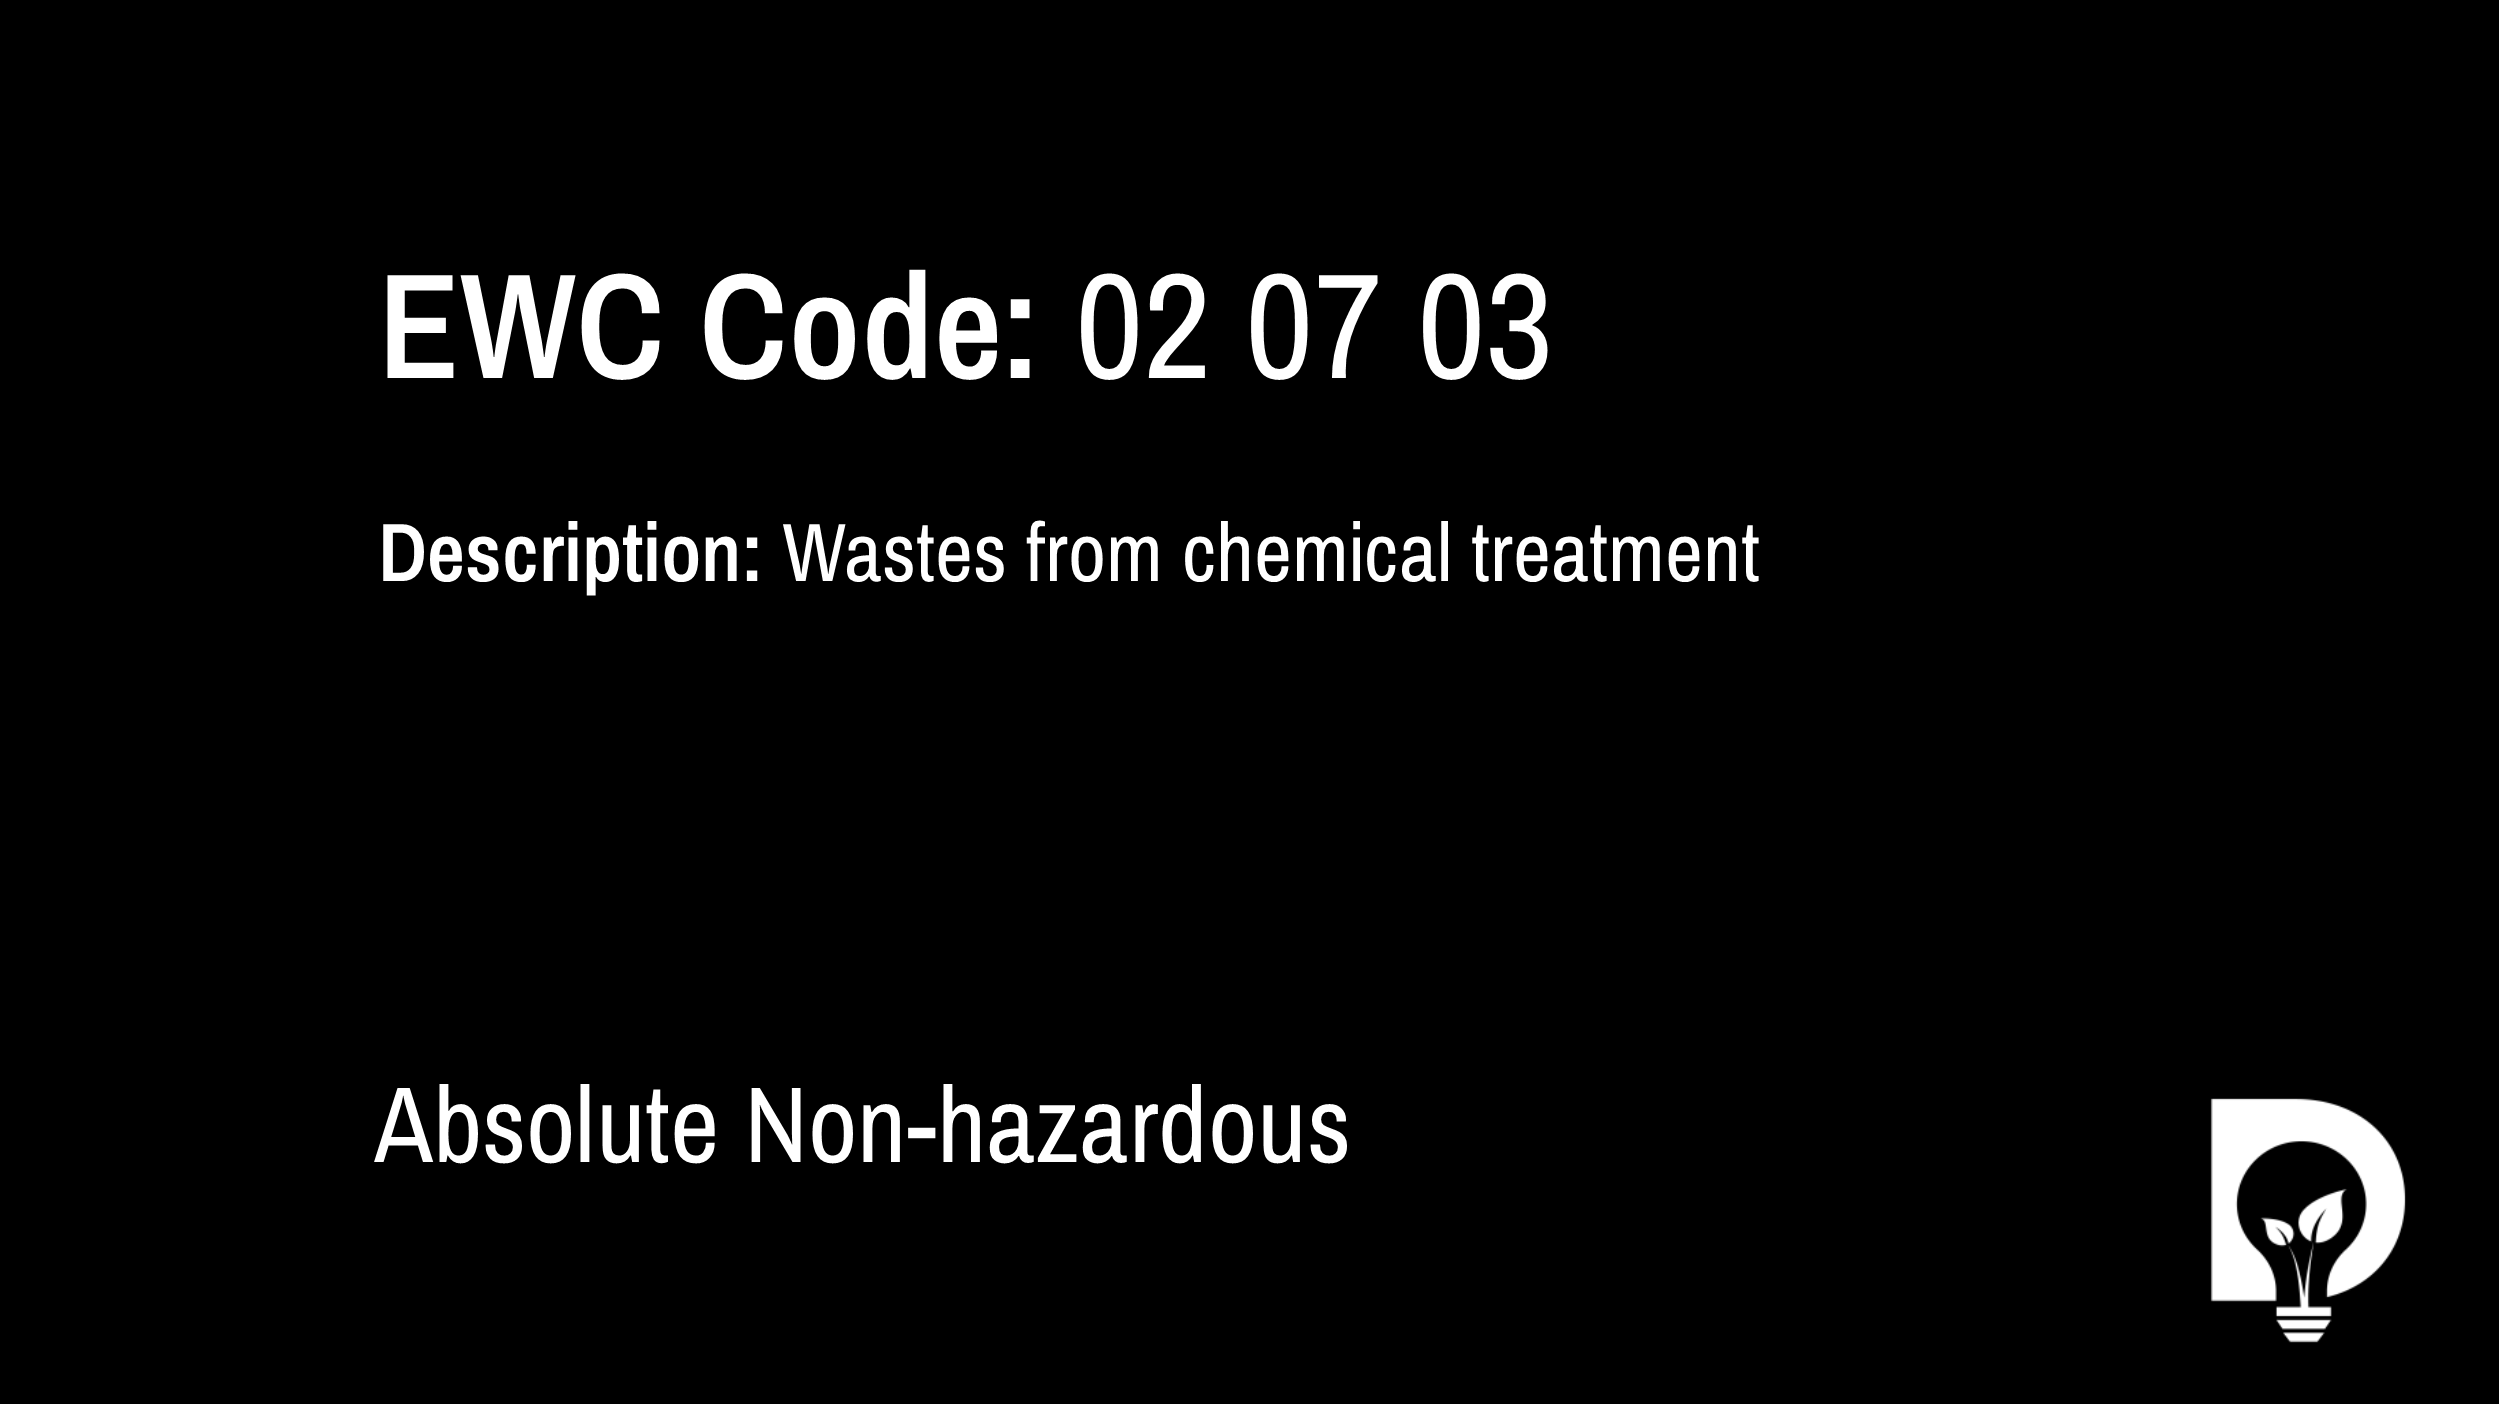 EWC Code: 02 07 03 - wastes from chemical treatment. Type: Absolute Non-hazardous. Image by Dsposal